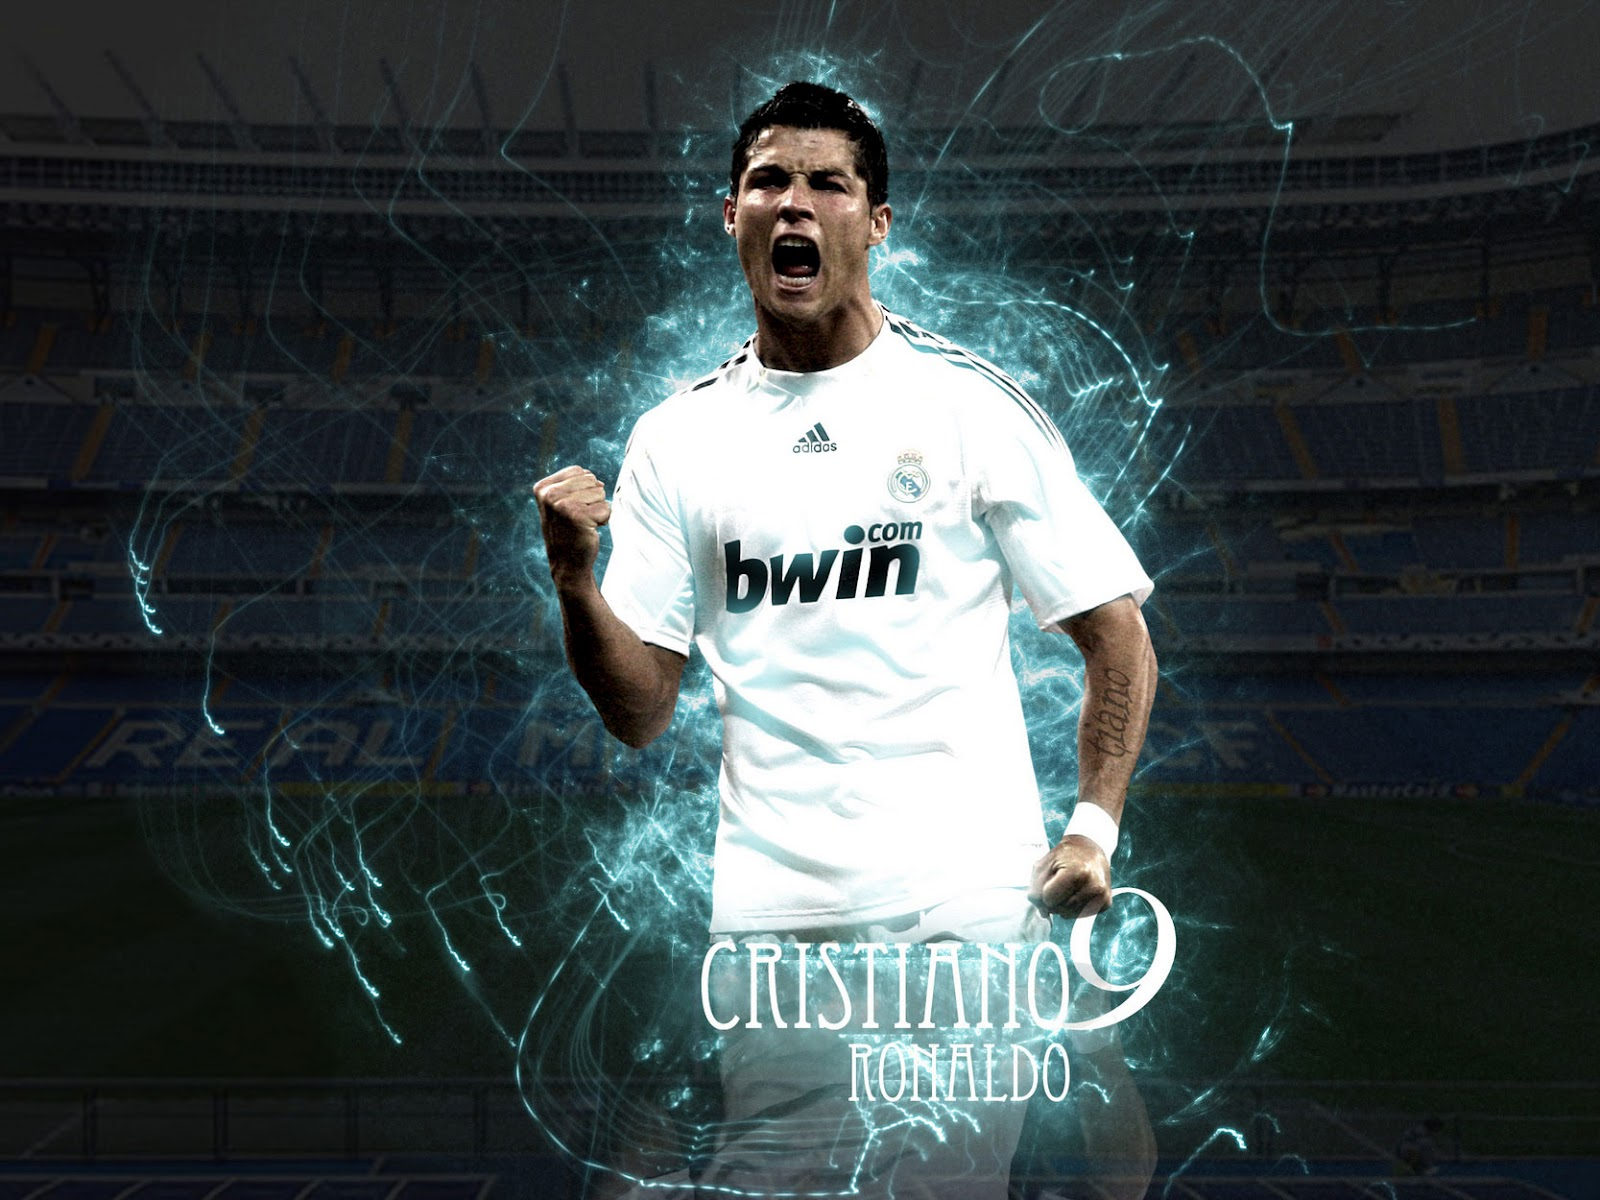 Top football players cristiano ronaldo wallpapers 2012 for The latest wallpaper